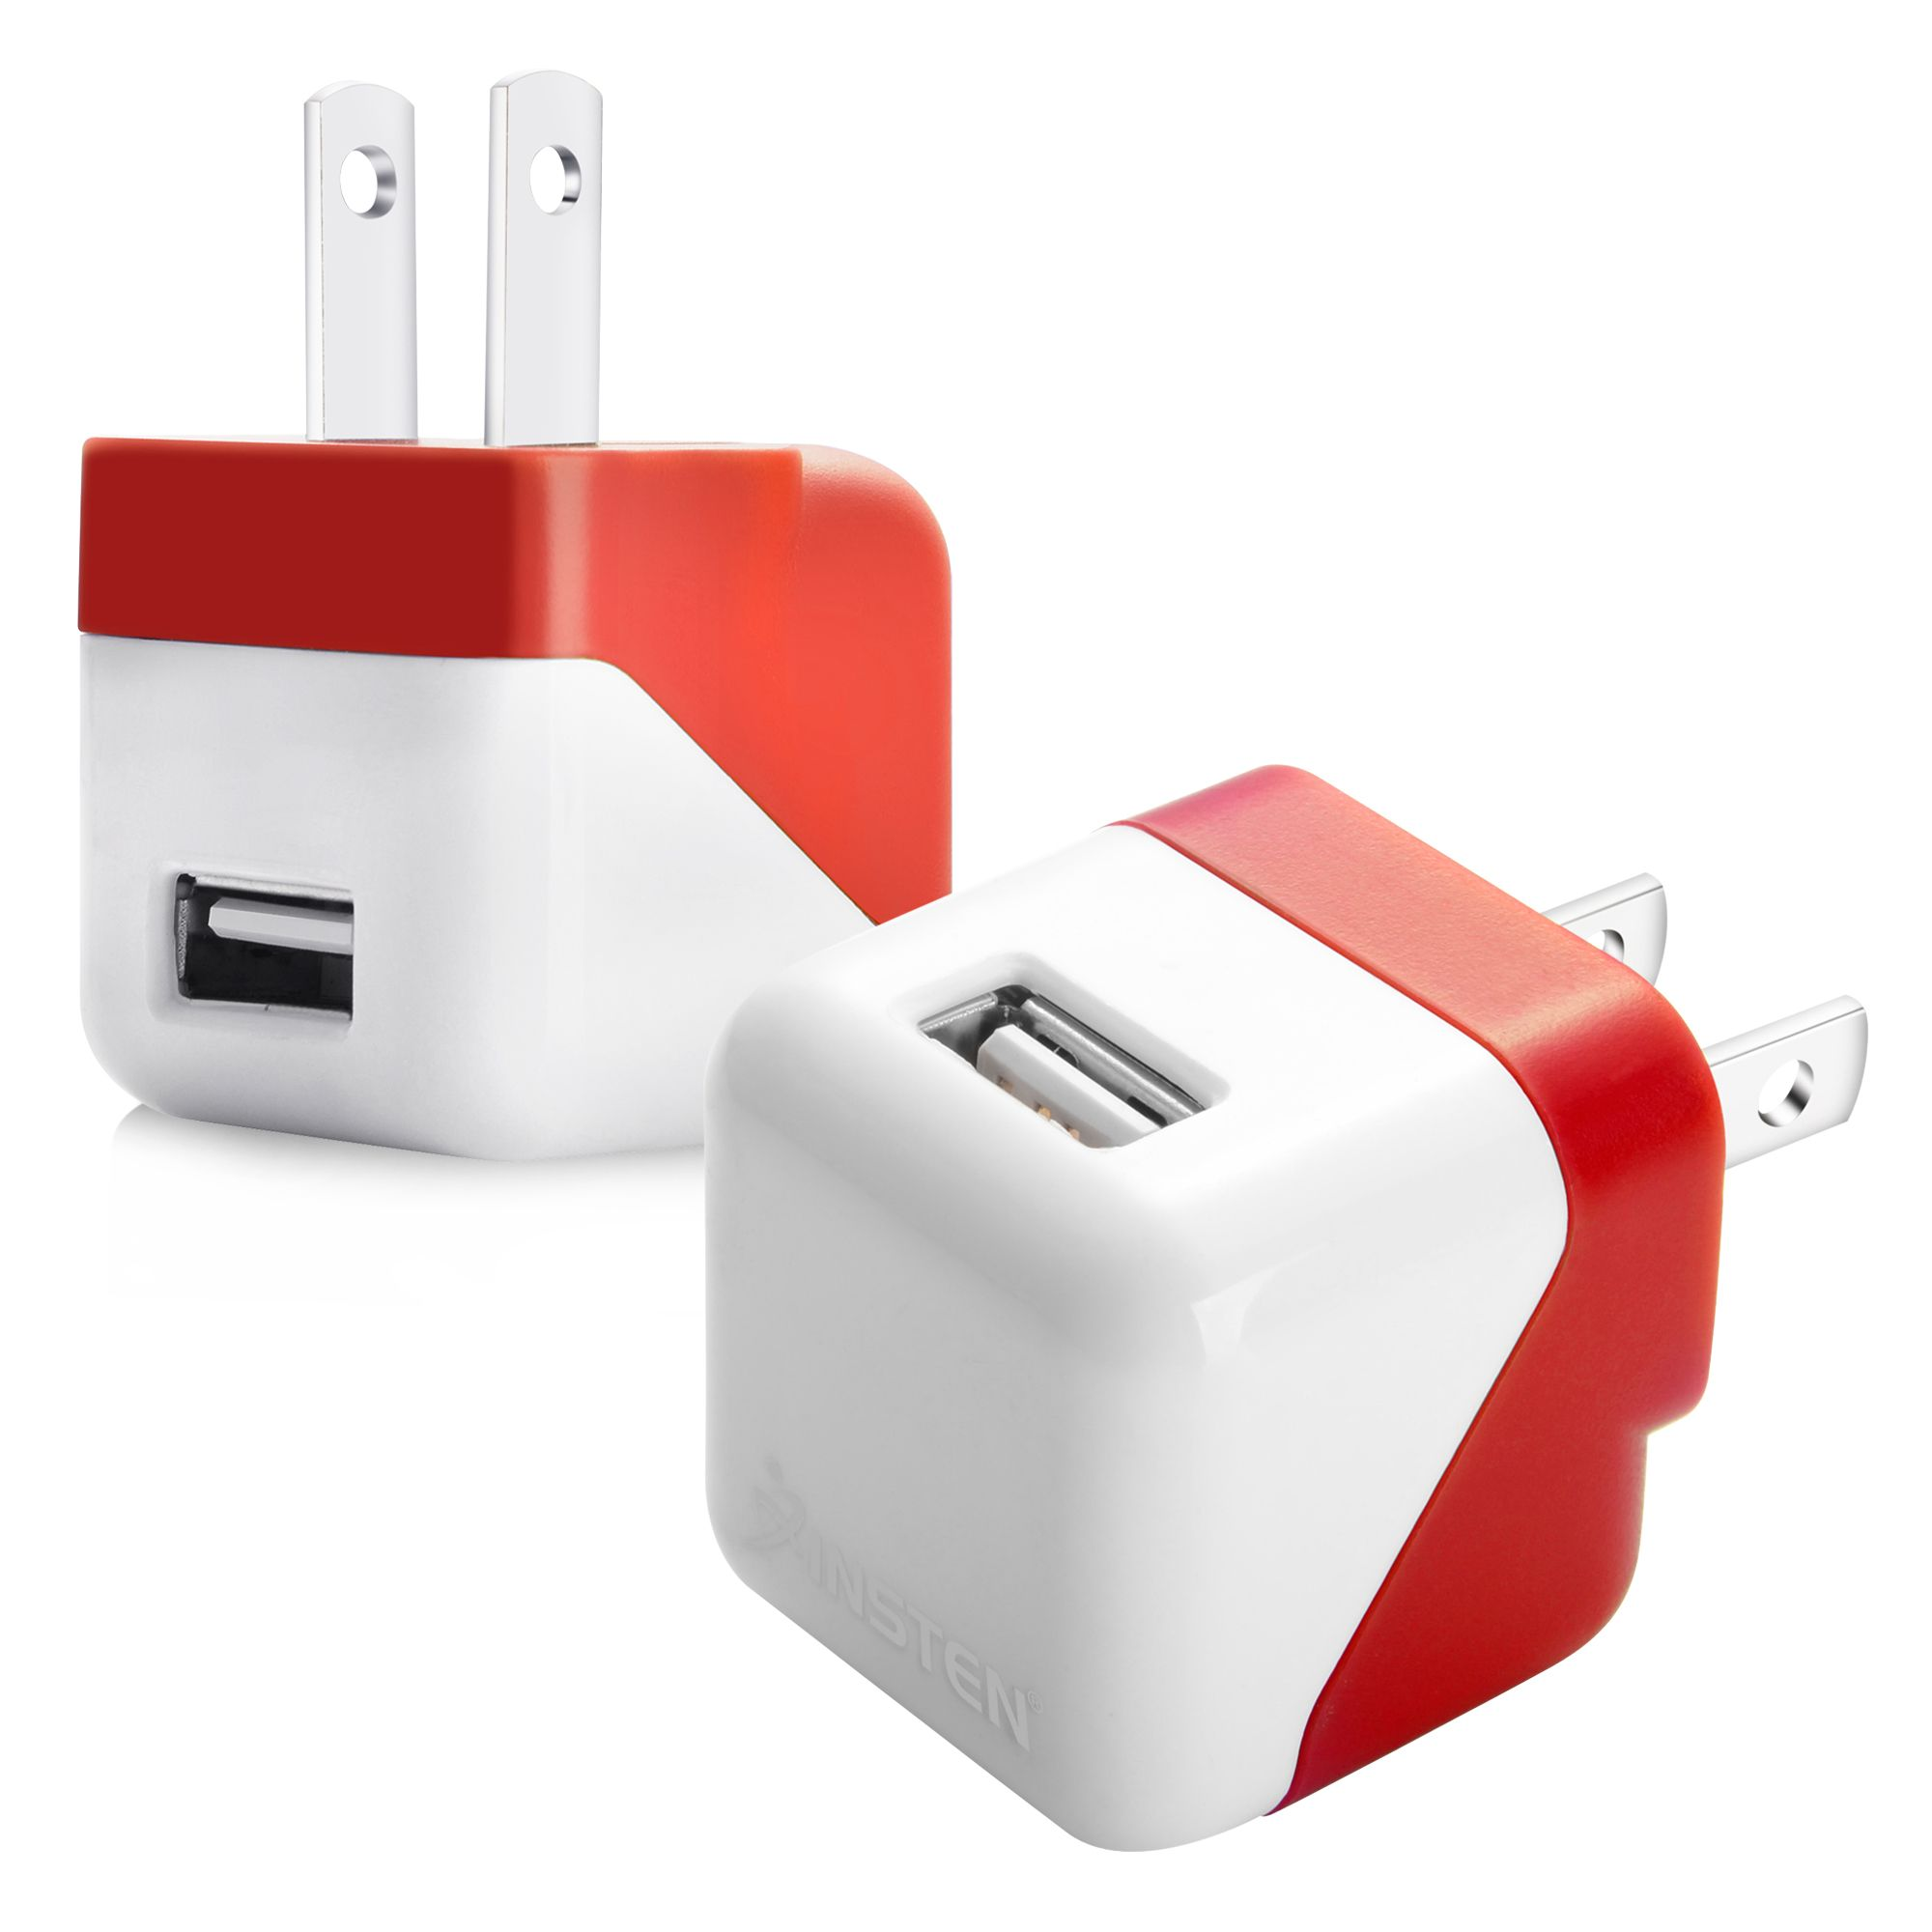 Insten Universal USB AC Wall Travel Adapter Charger Red For iPhone XS X 8 7 6 6s Plus SE 5S 5 Samsung Galaxy S9 S9+ S7 S6 S5 Note 8 5 J7 J3 J1 On5 LG G Stylo 3 Stylus K7 G6 G6+ V30 V20